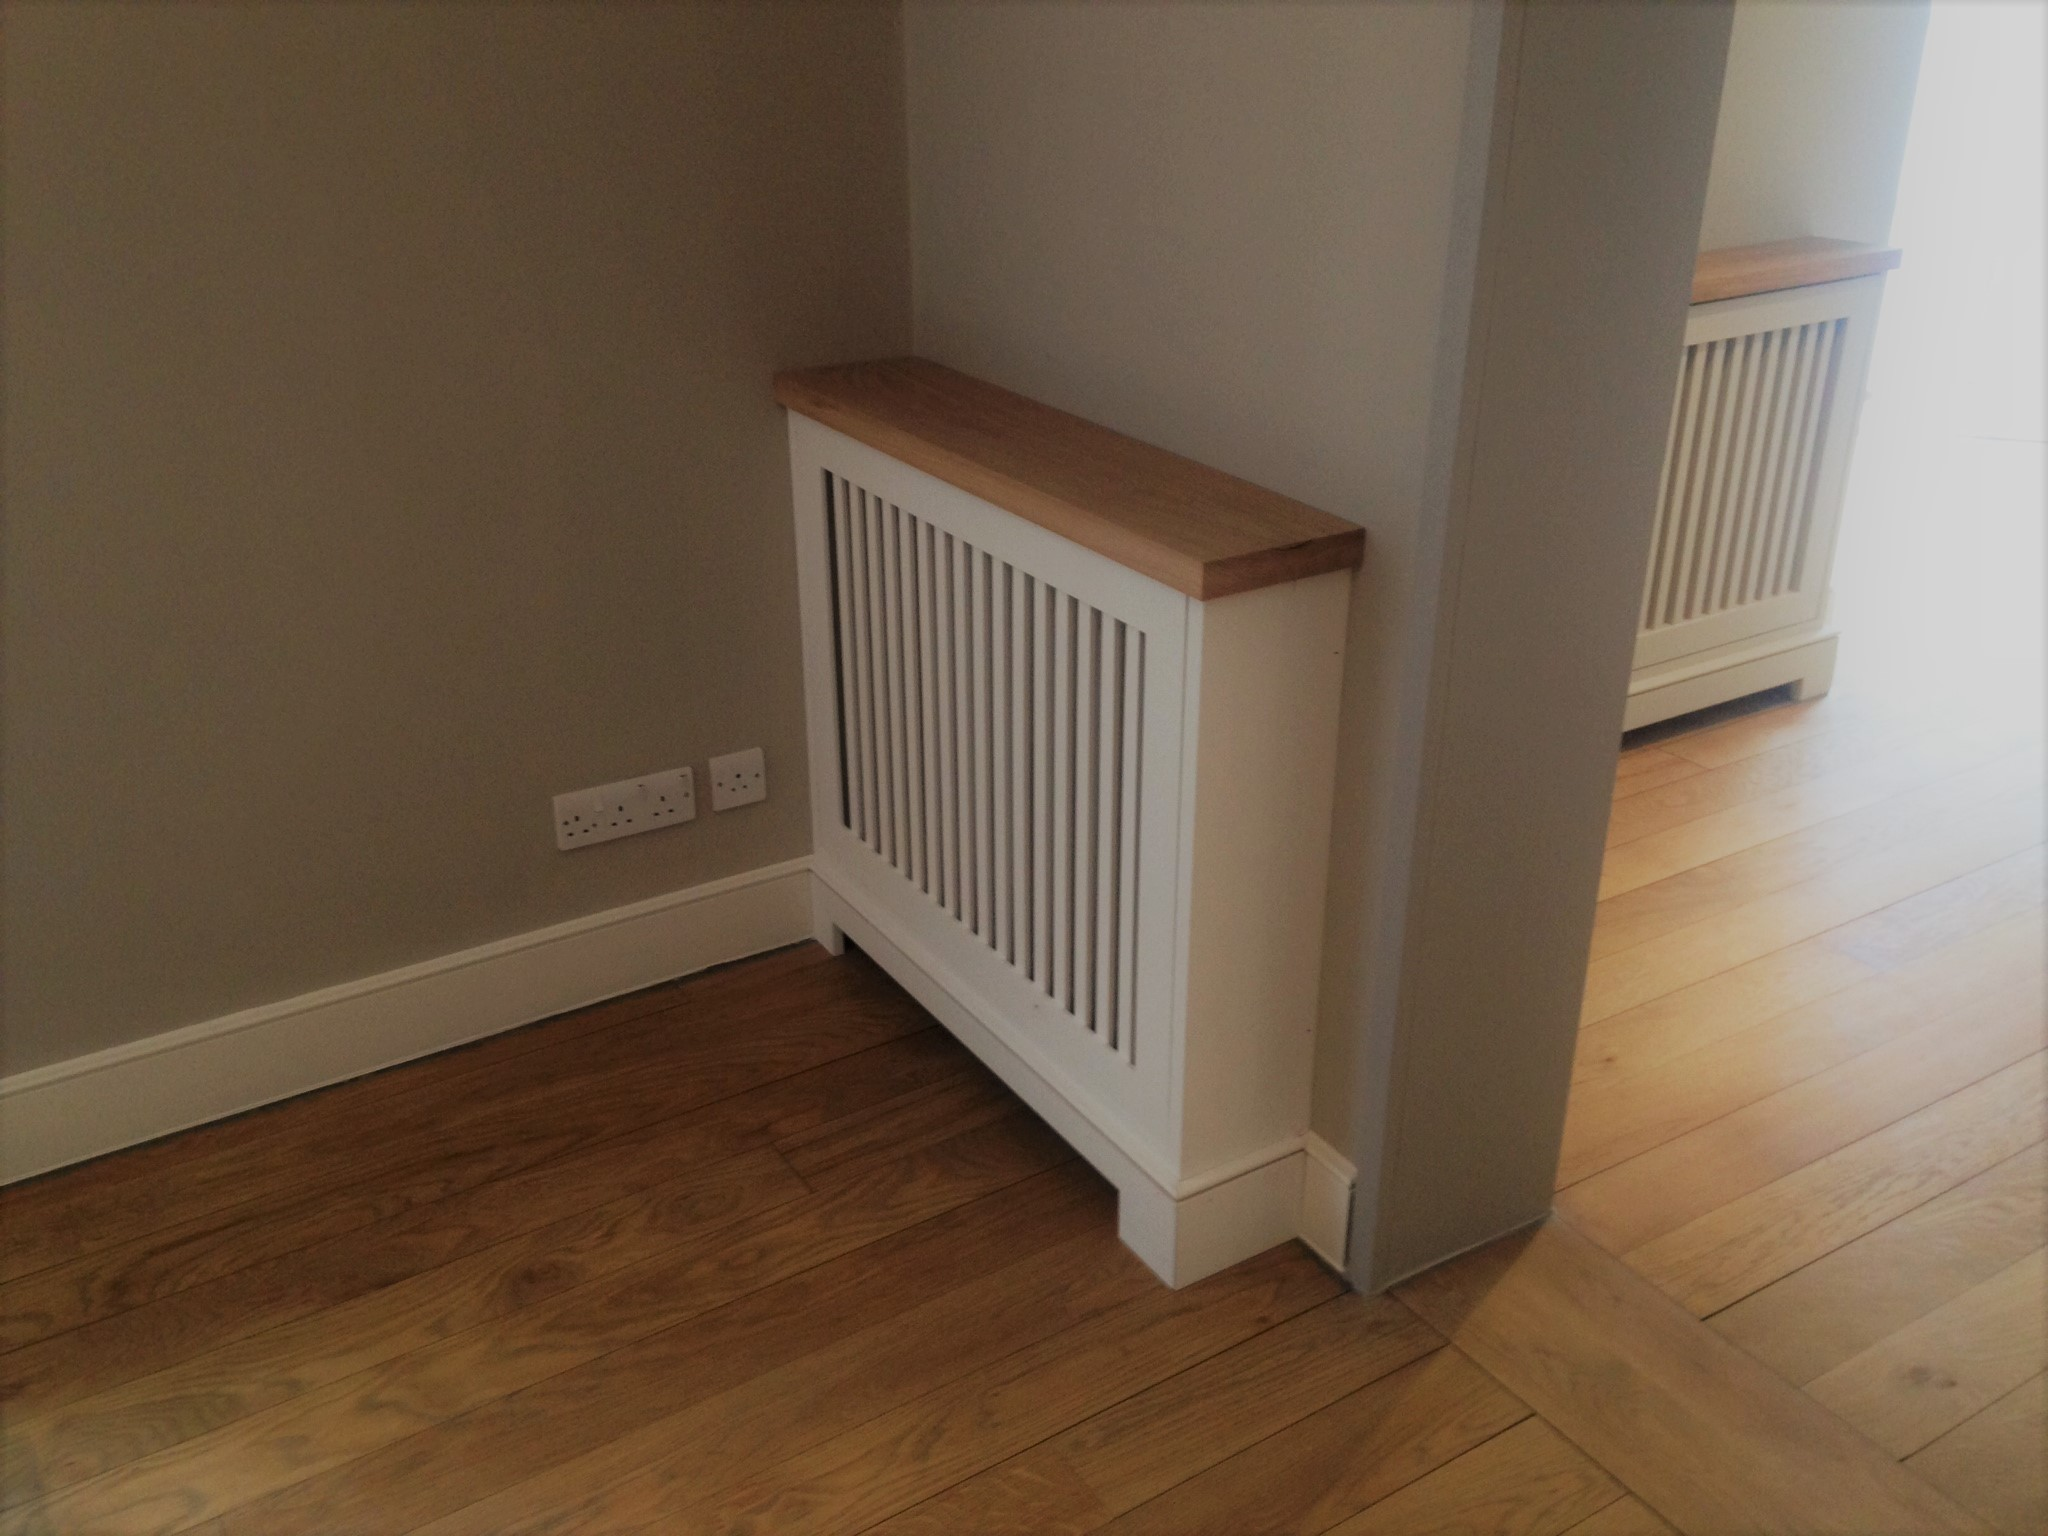 A modern radiator cover adds a certain something to a room, for photographs or ornaments to be placed upon.